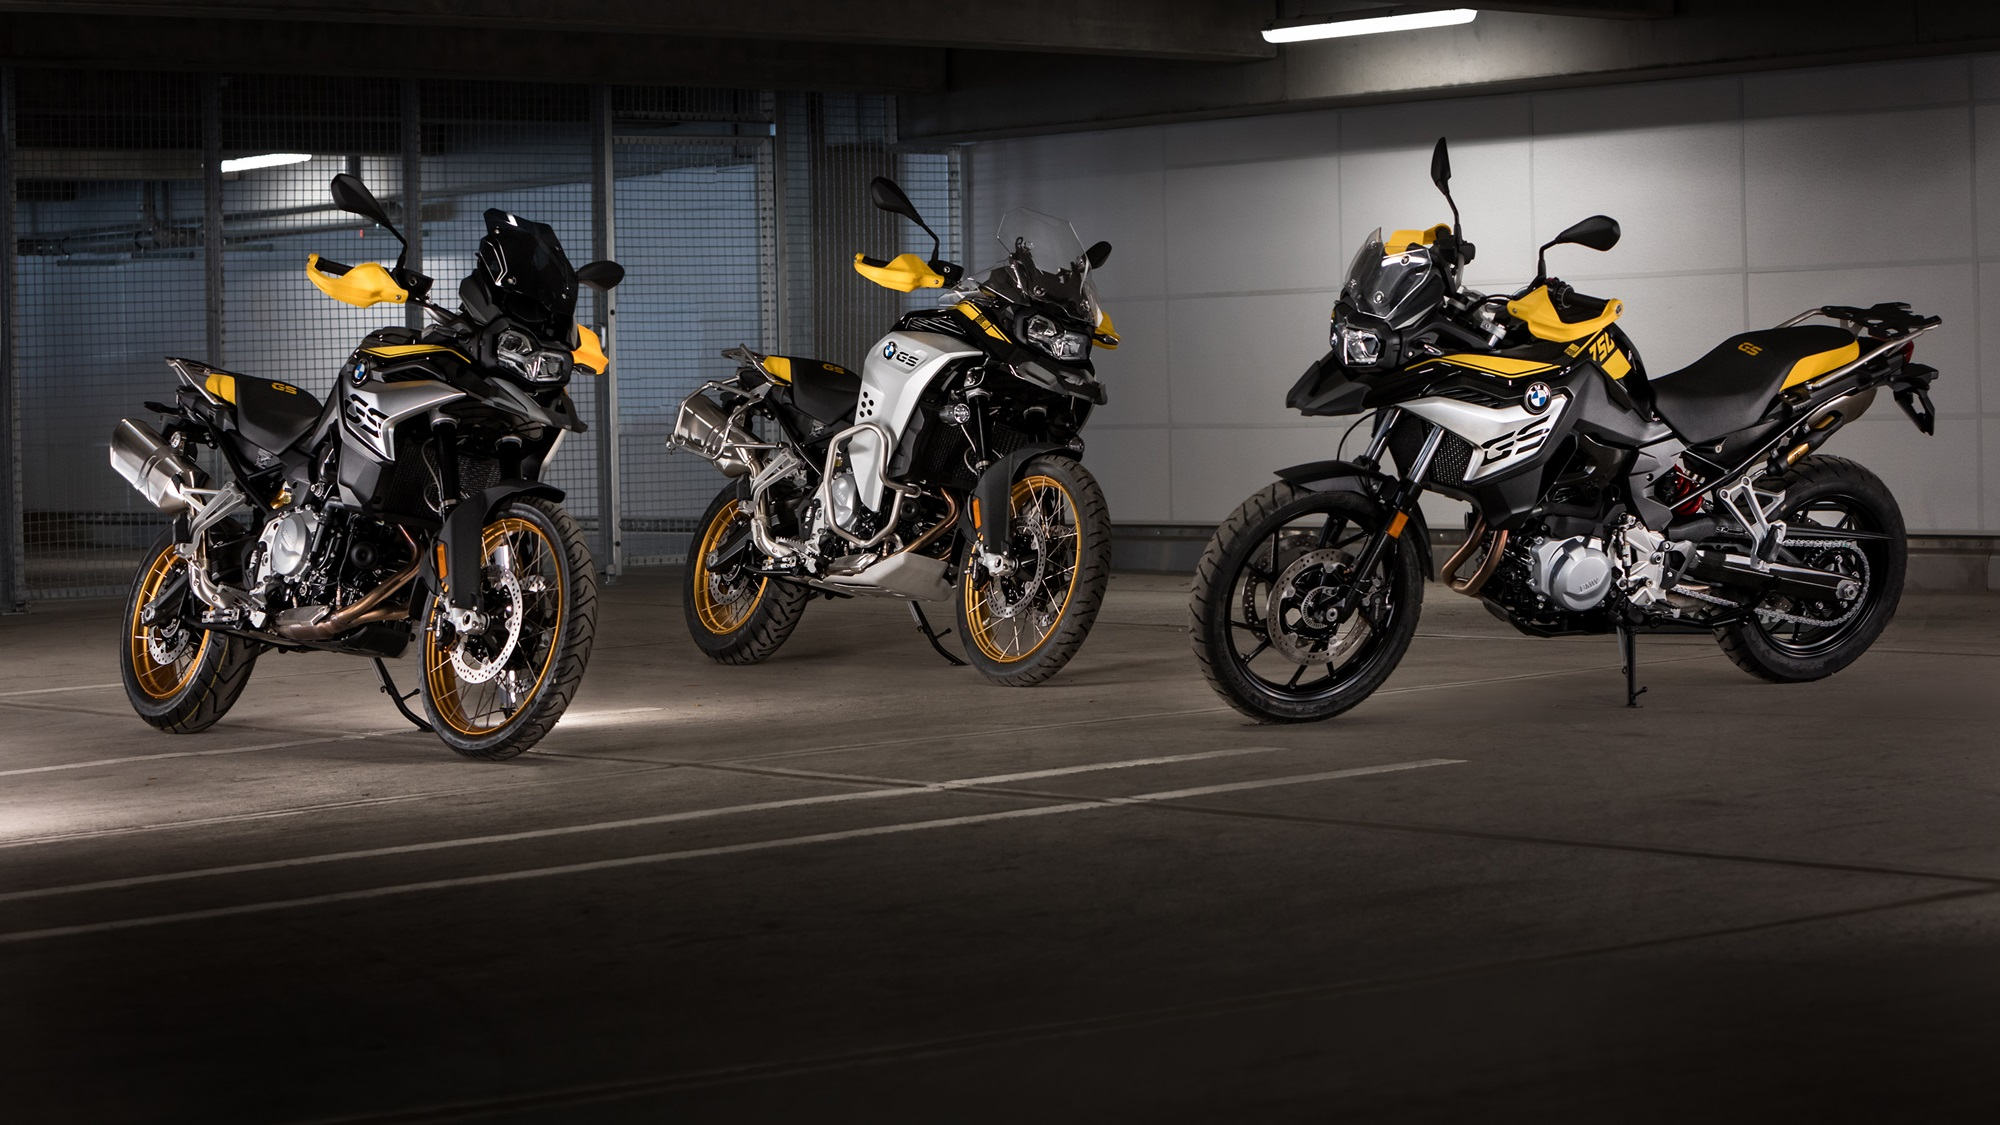 BMW F 750 GS, F 850 GS and F 850 GS Adventure